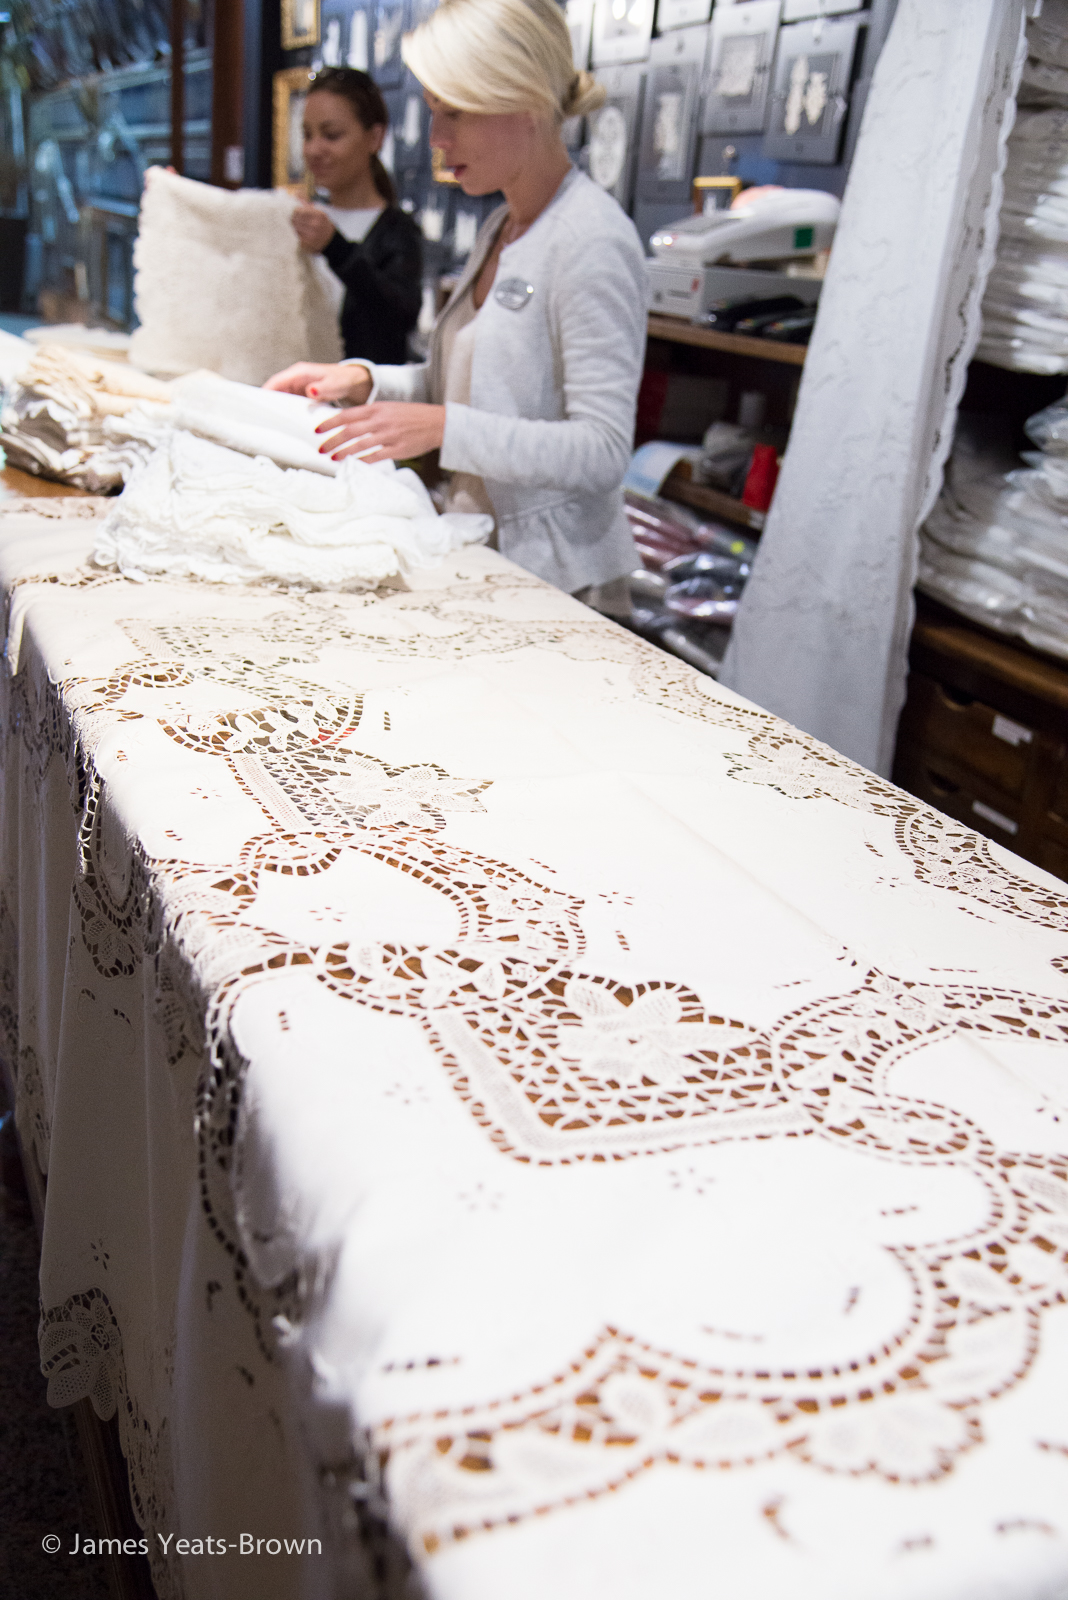 Fine displays of lace at Dalla Lidia http://www.dallalidia.com